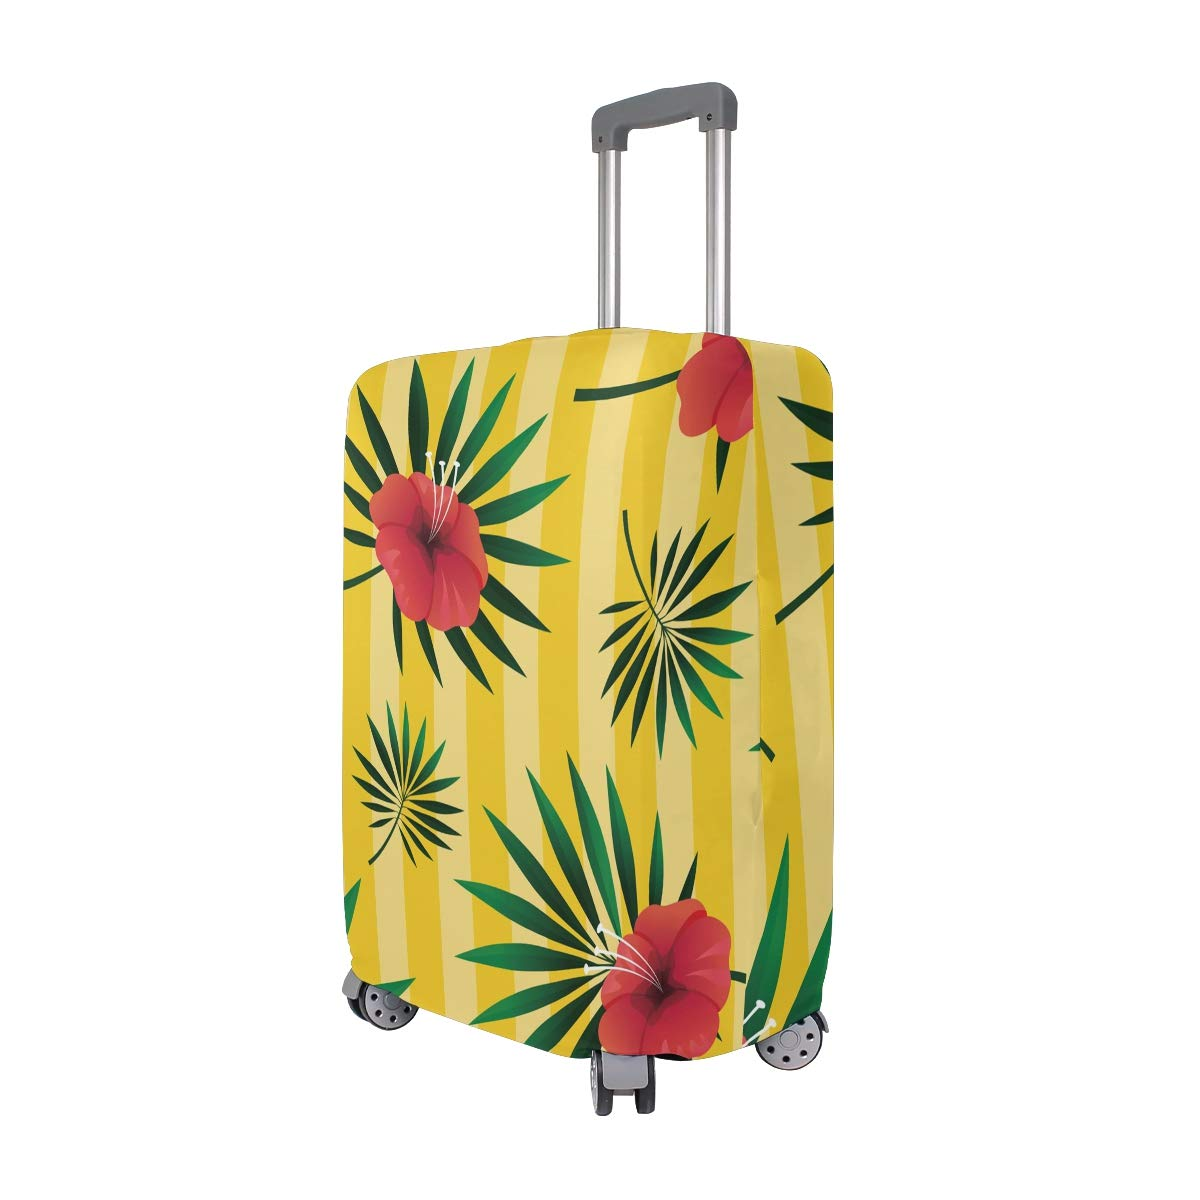 Baggage Covers Tropical Leaf Floral Yellow Striped Washable Protective Case